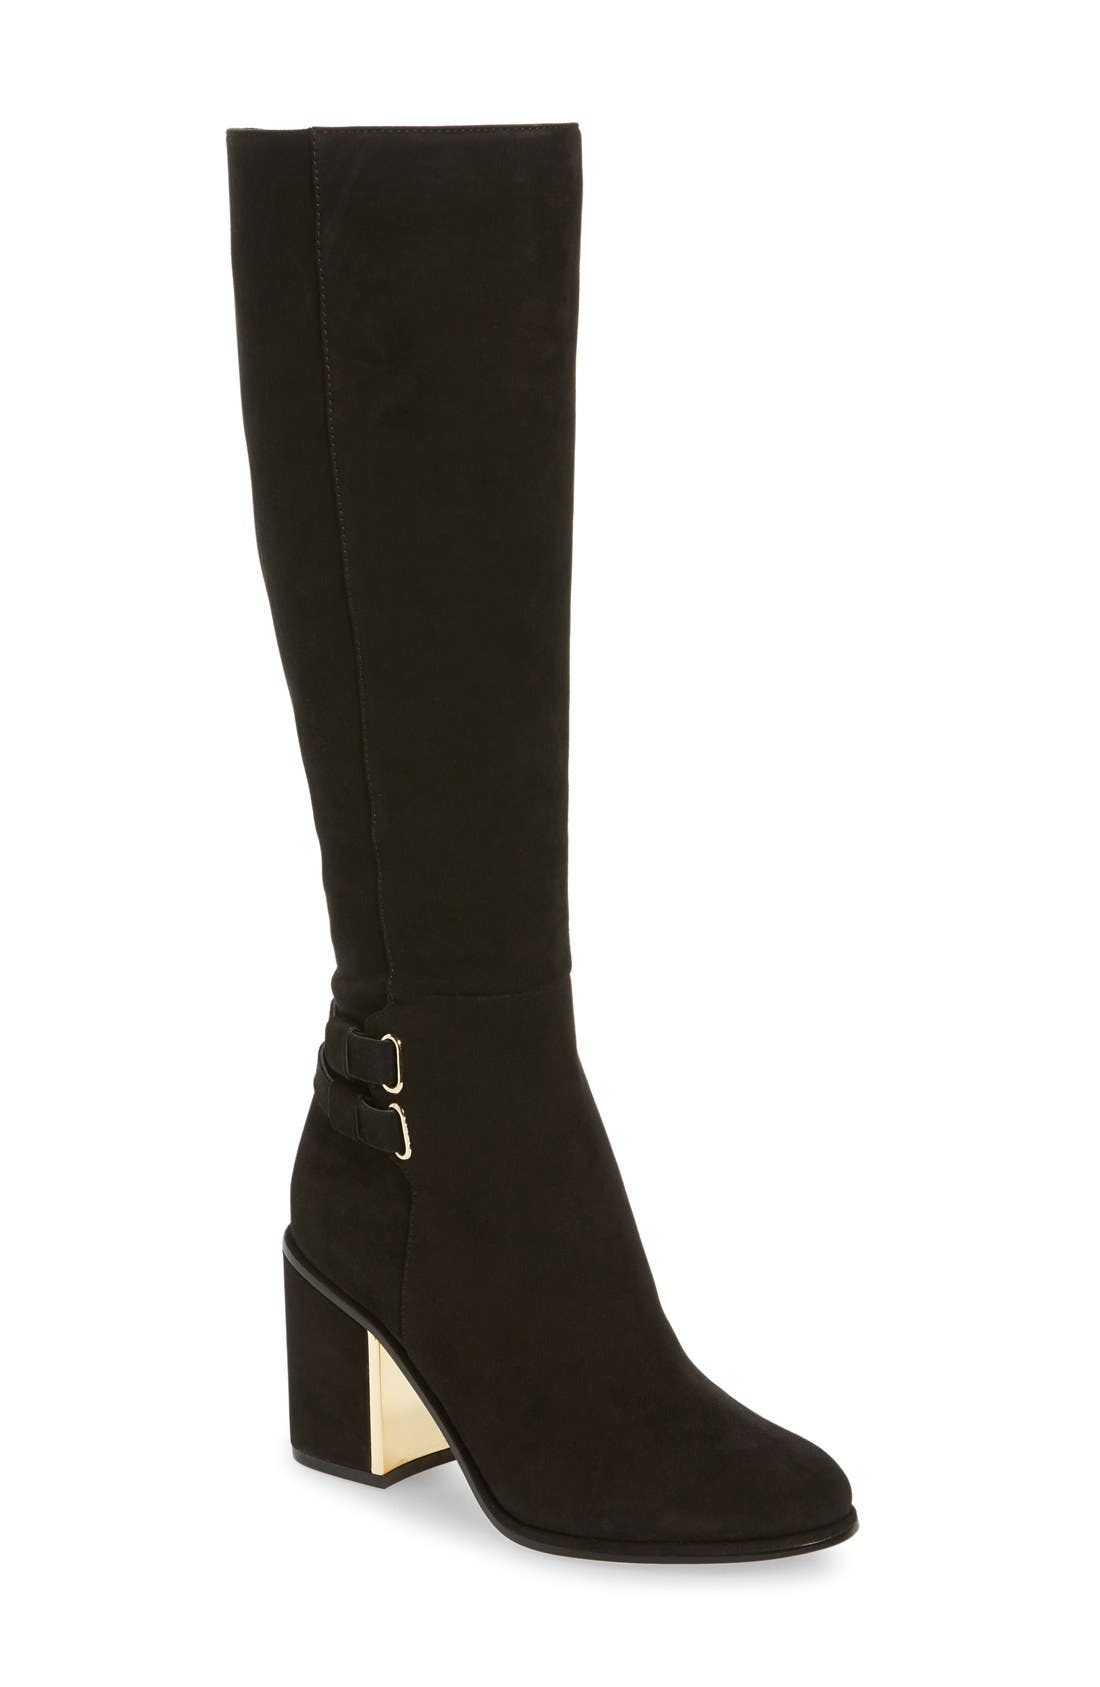 Main Image - Calvin Klein Camie Water Resistant Knee High Boot (Women)